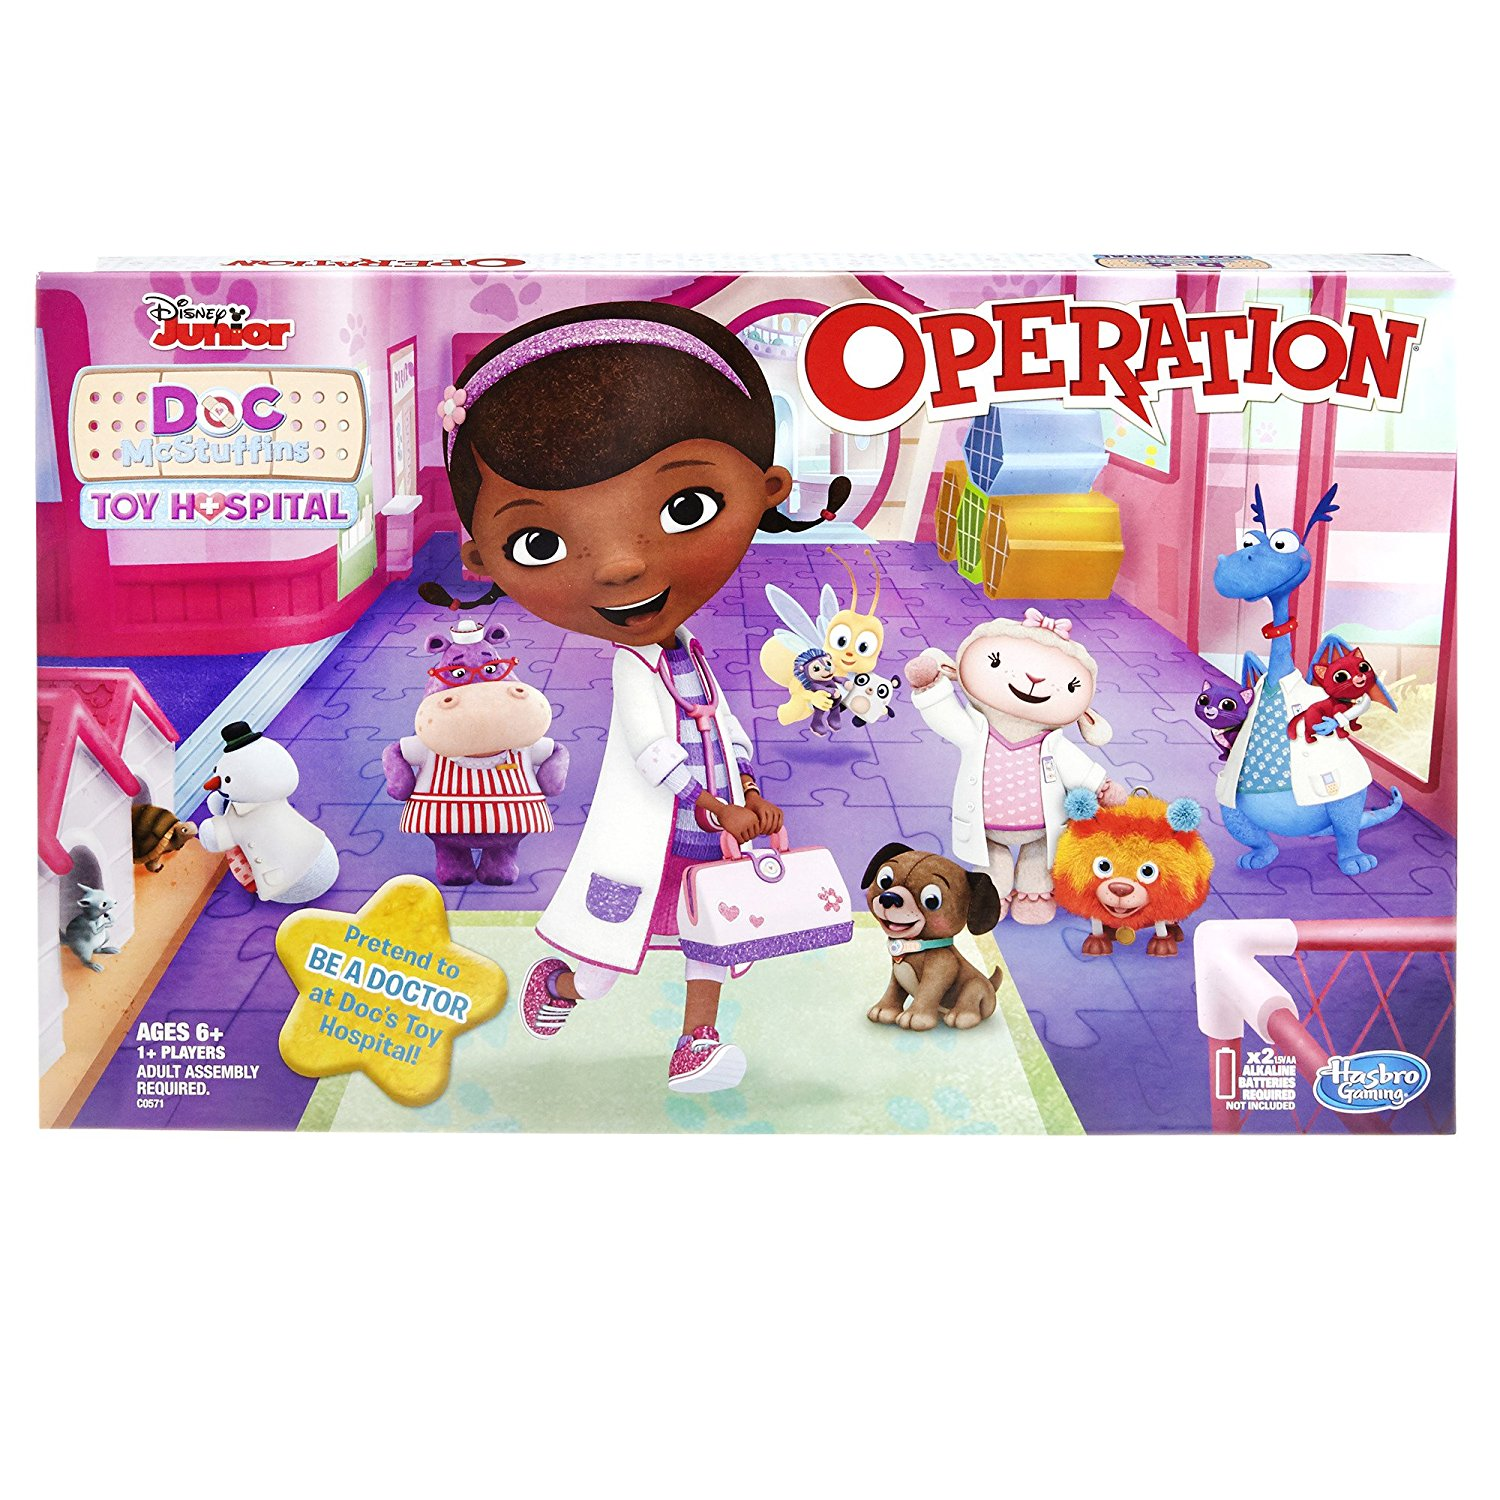 Operation Game: Disney Junior Doc McStuffins Toy Hospital Edition By Hasbro Ship from US by